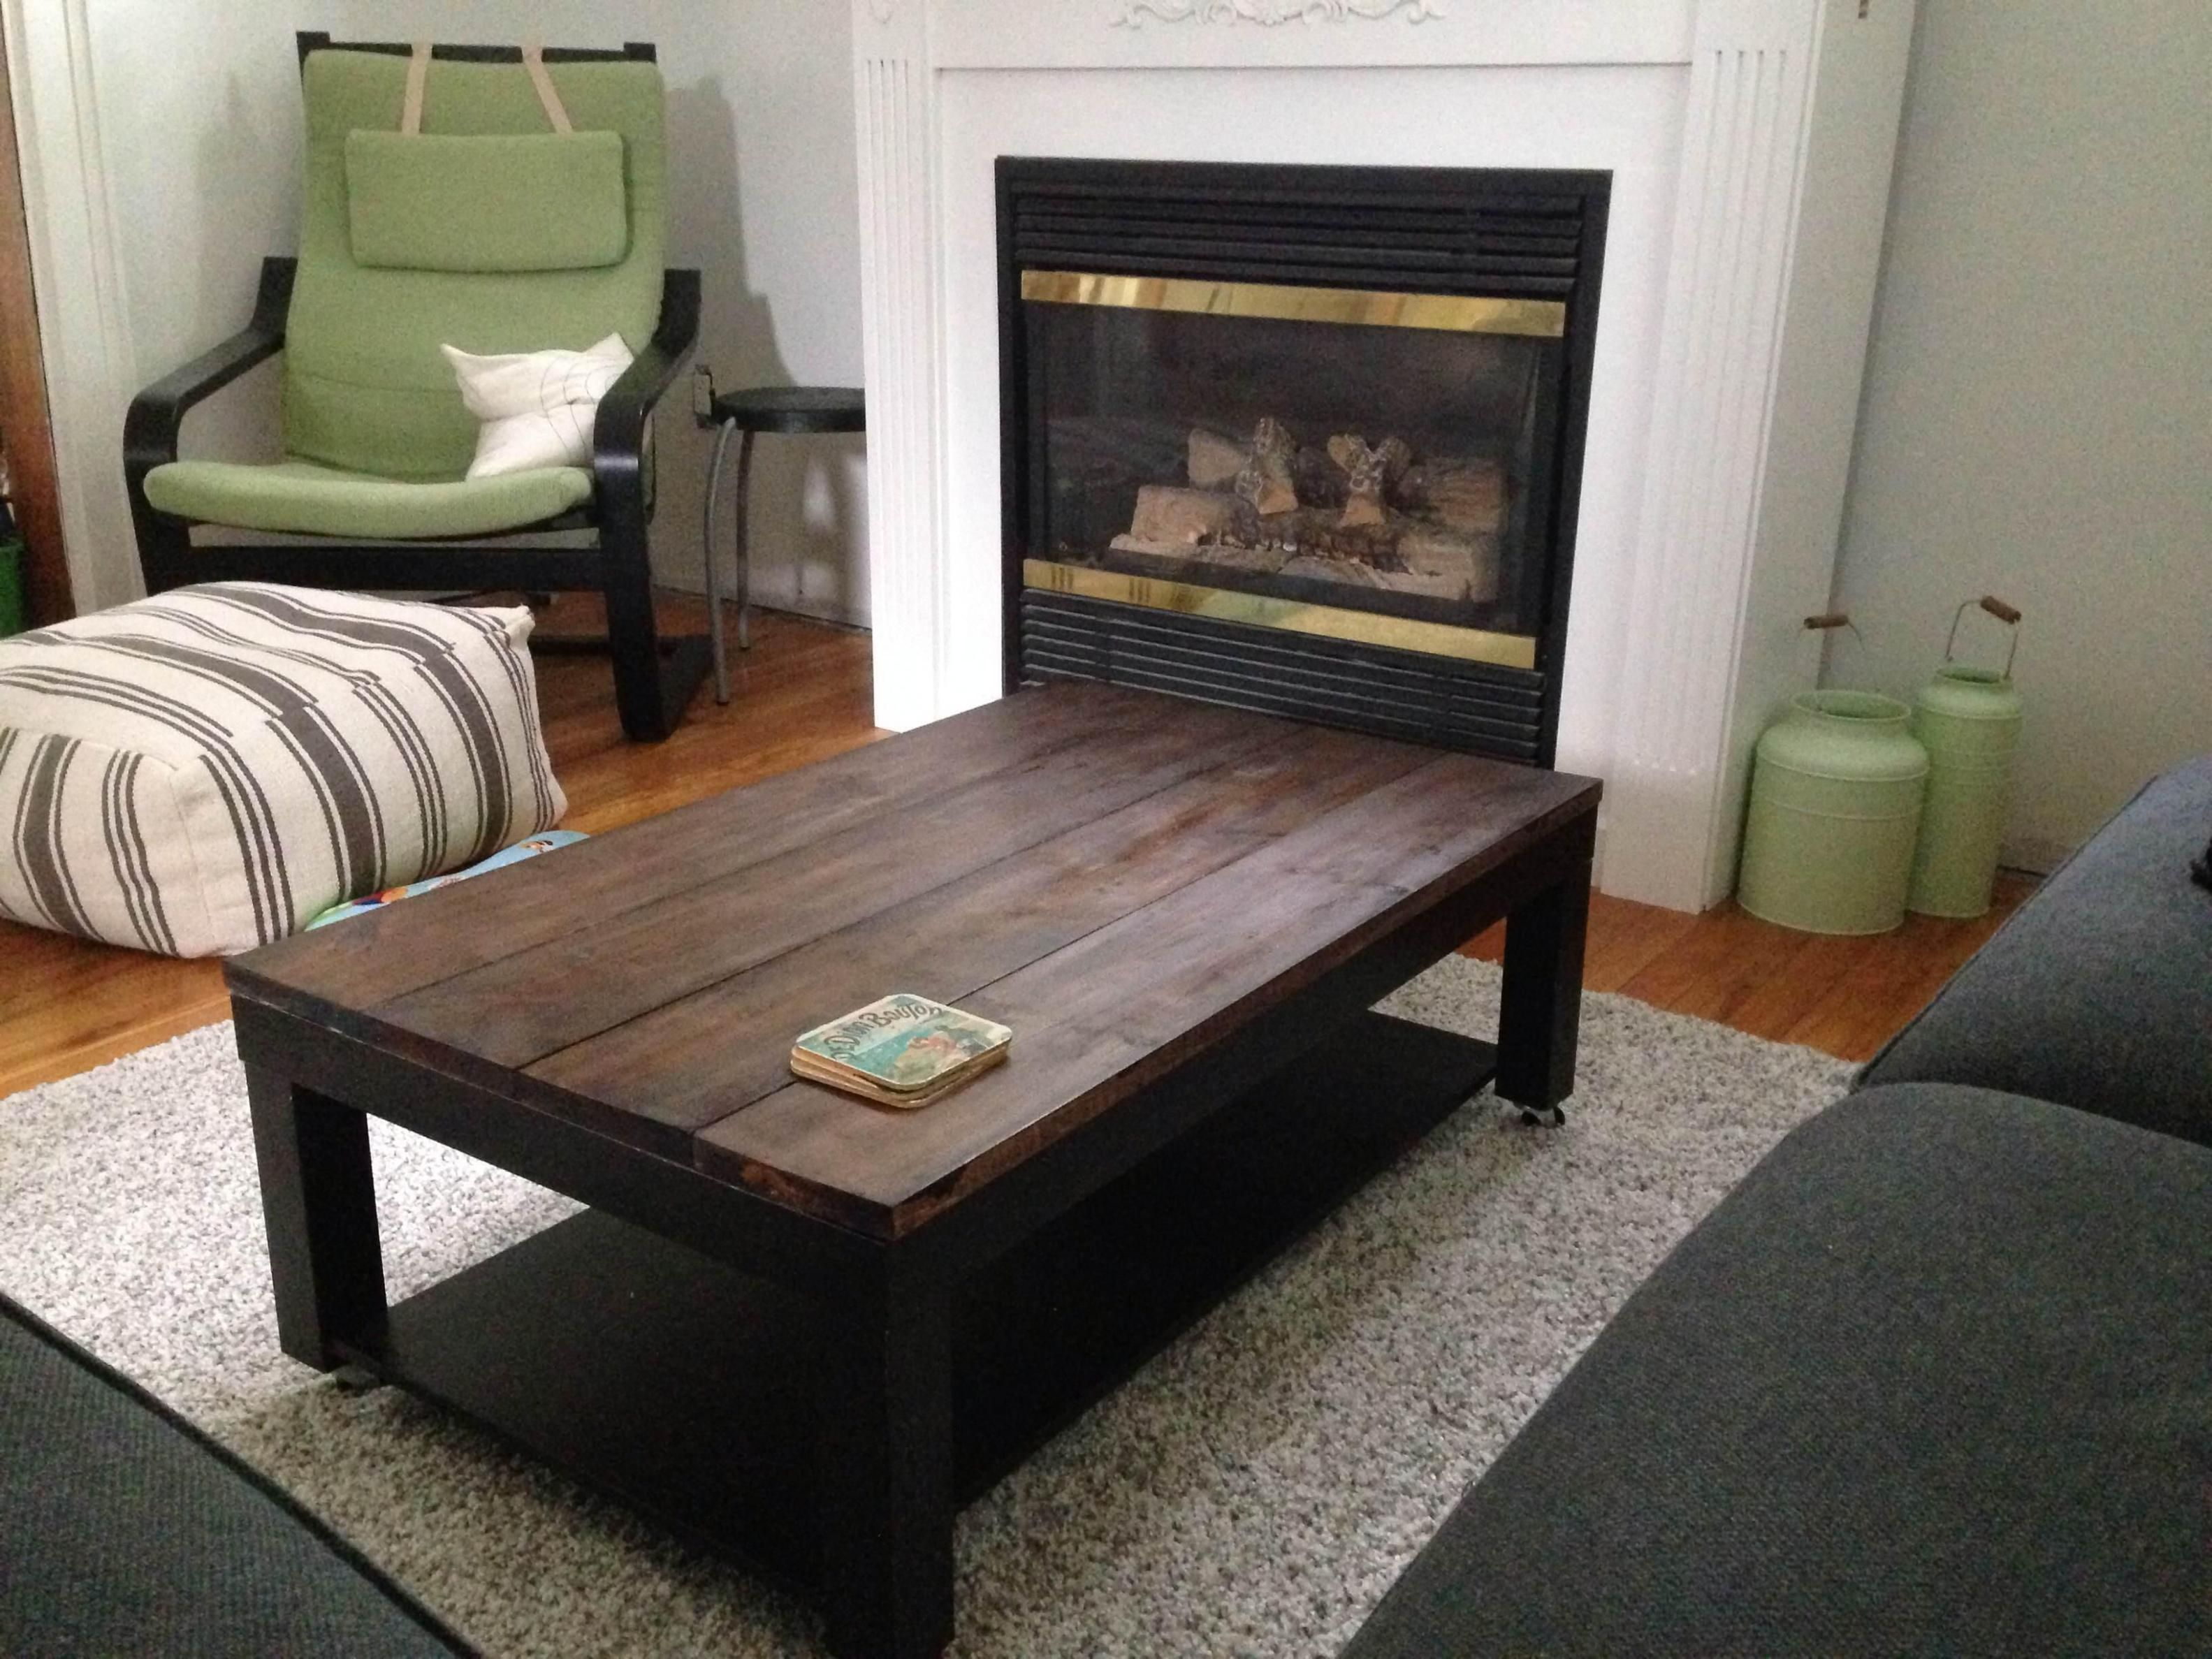 Ikea Lack Coffee Table Hack …